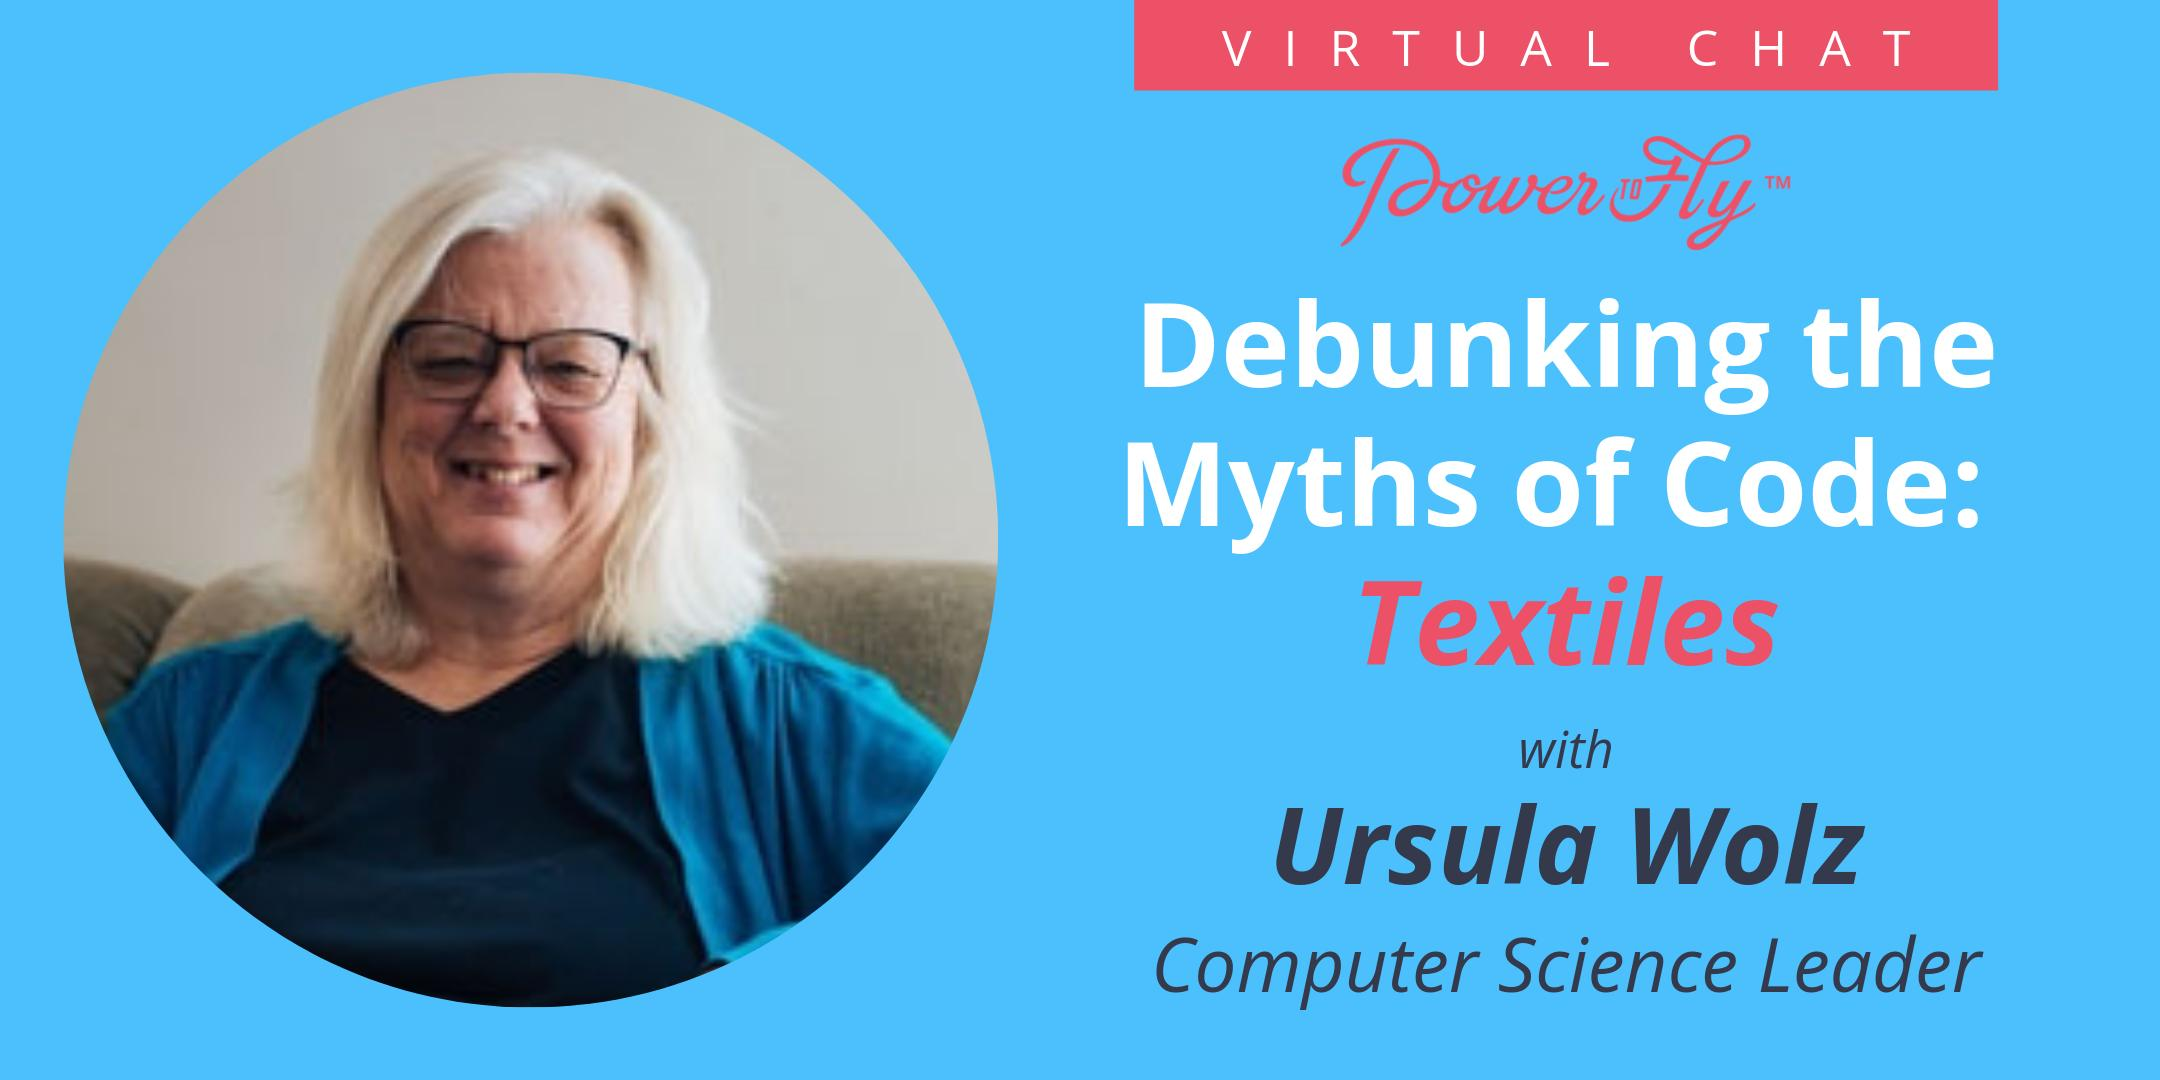 Debunking the Myths of Code:  Textiles